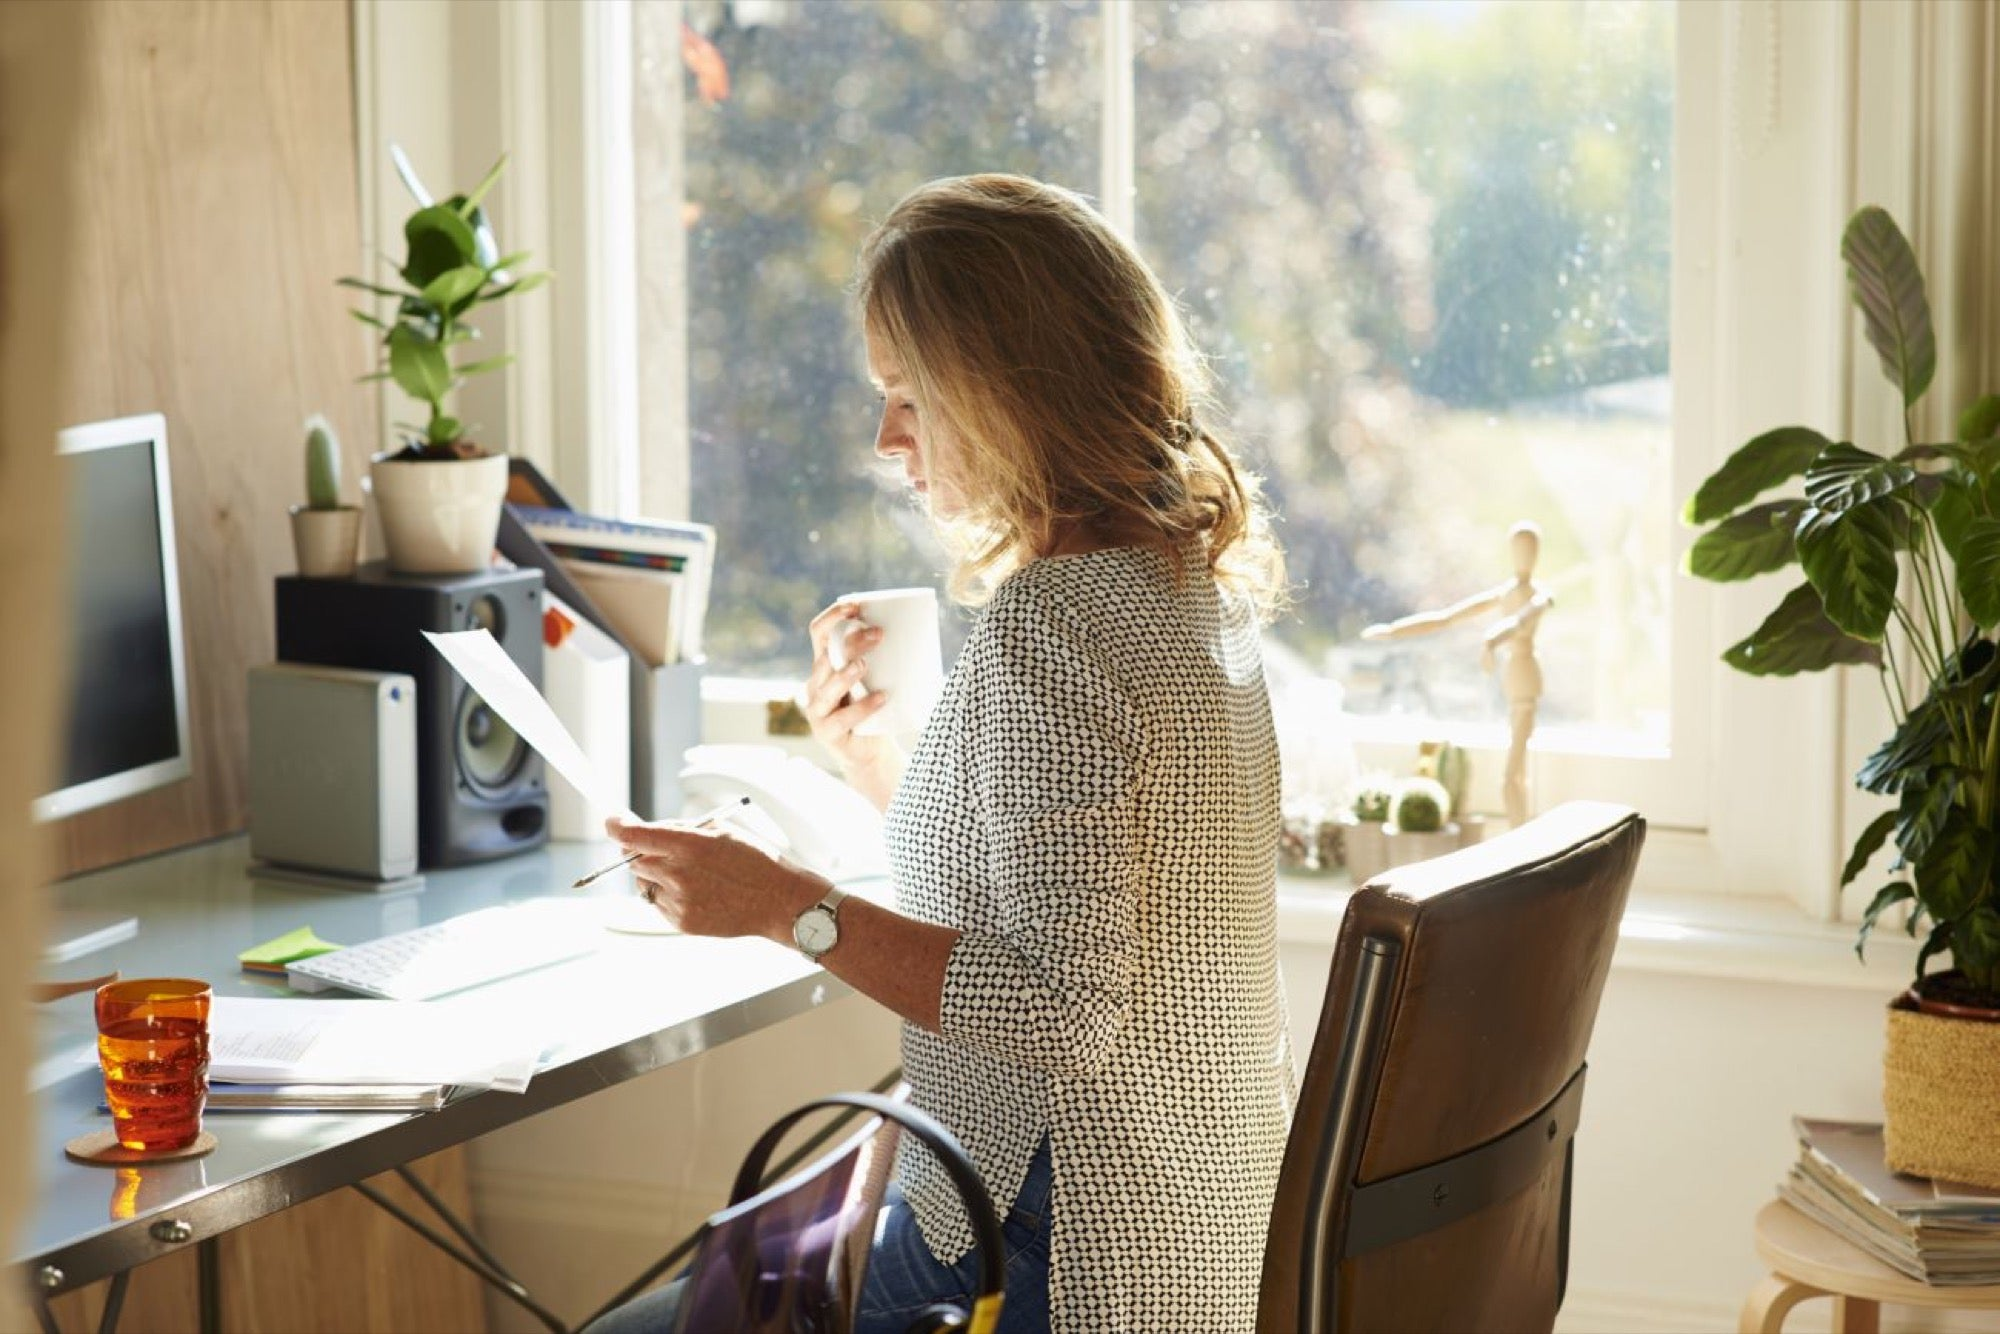 5 Worthwhile Things to Make Your Home Office More Productive